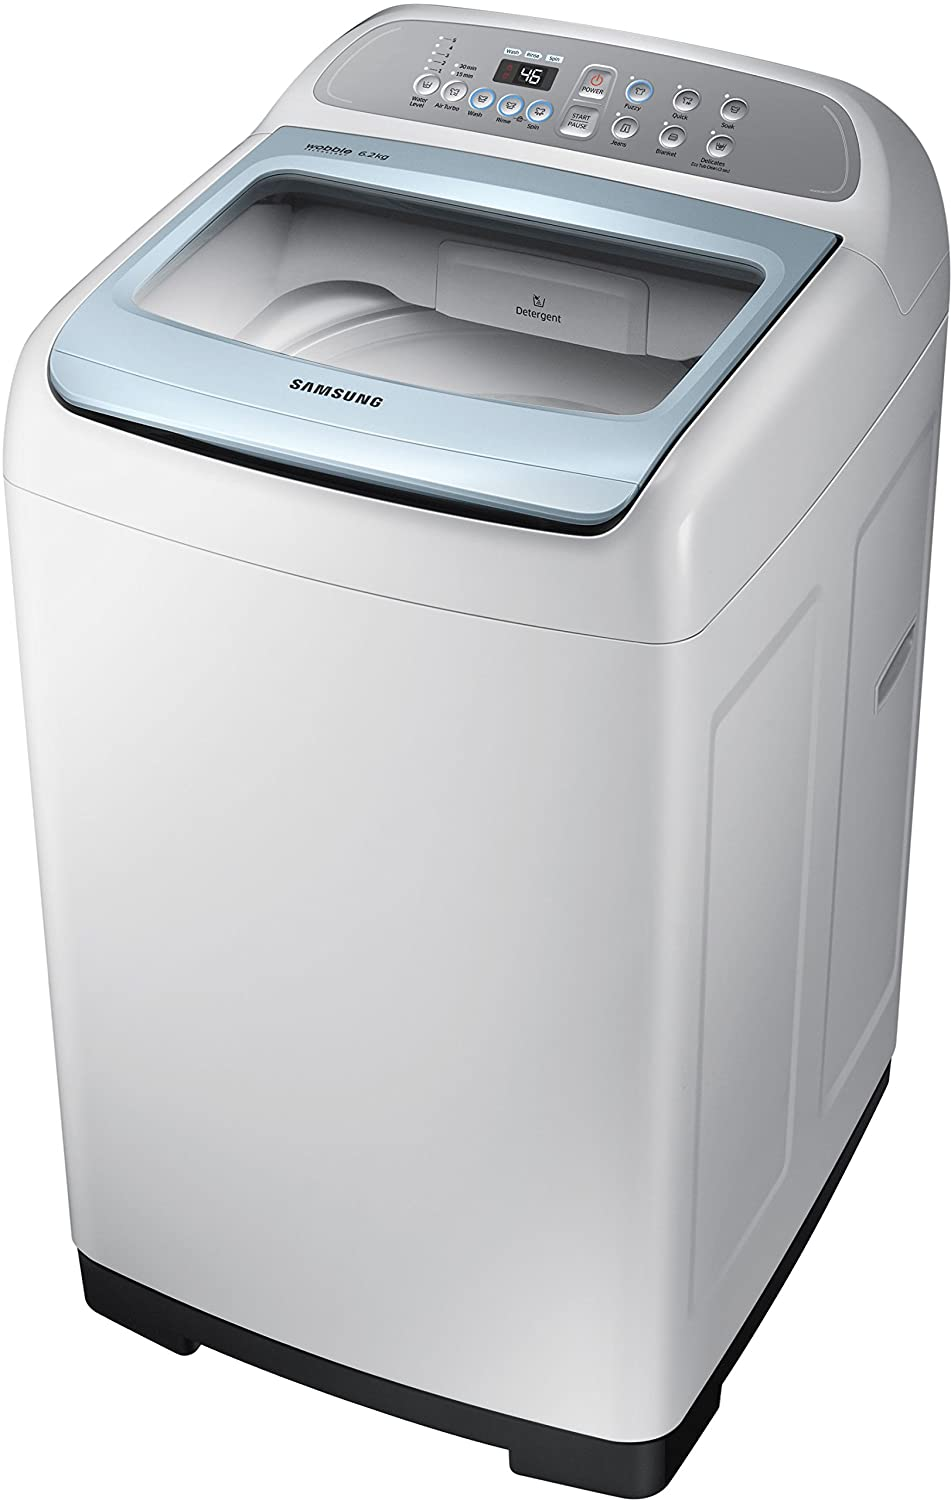 Samsung Wa62h4200hb Tl Fully Automatic Washing Machine 62 Kg Straight A Motor Wiring Home Kitchen